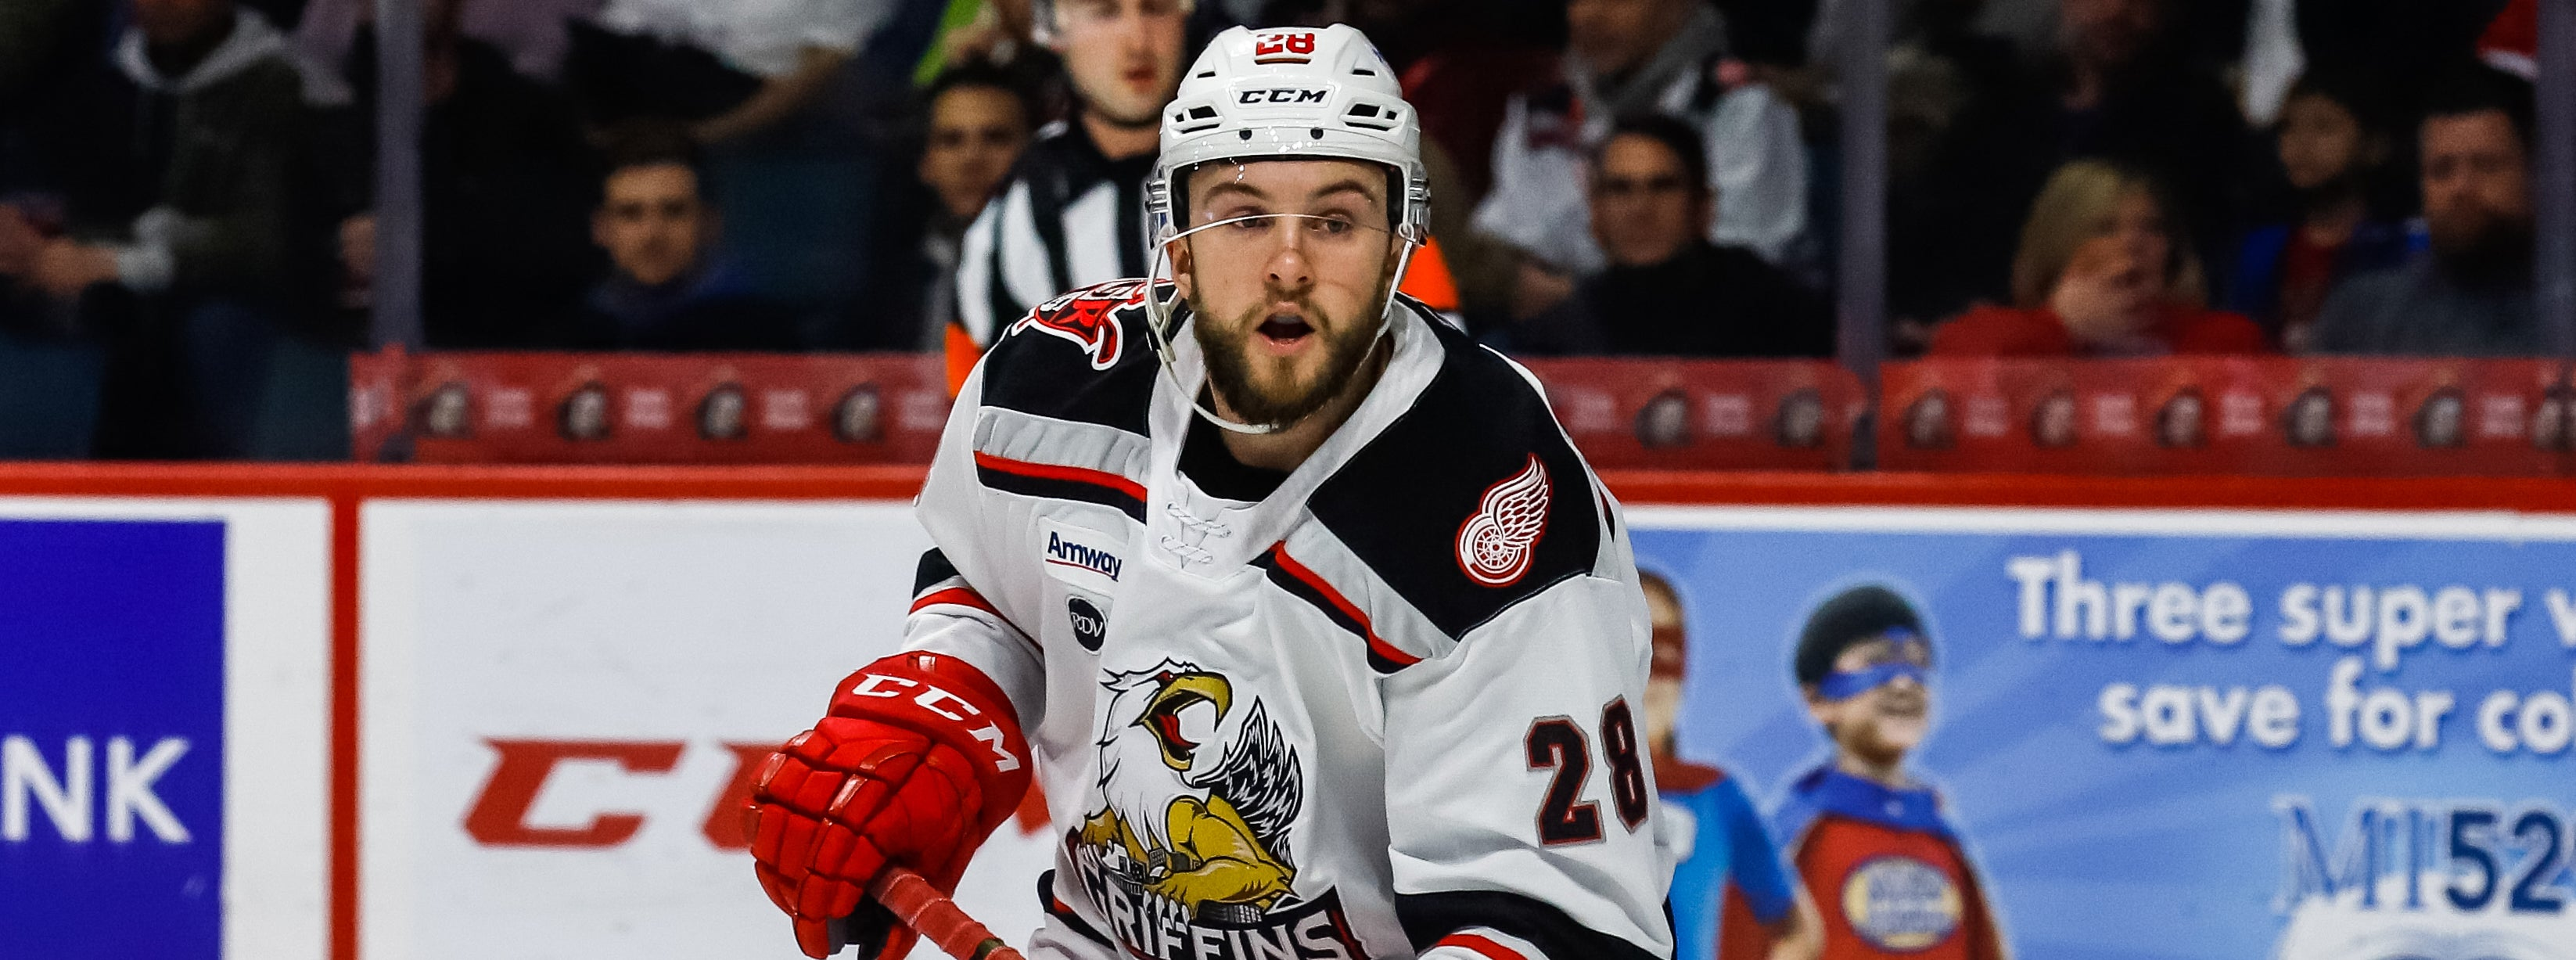 COMETS SIGN DYLAN SADOWY TO AHL CONTRACT